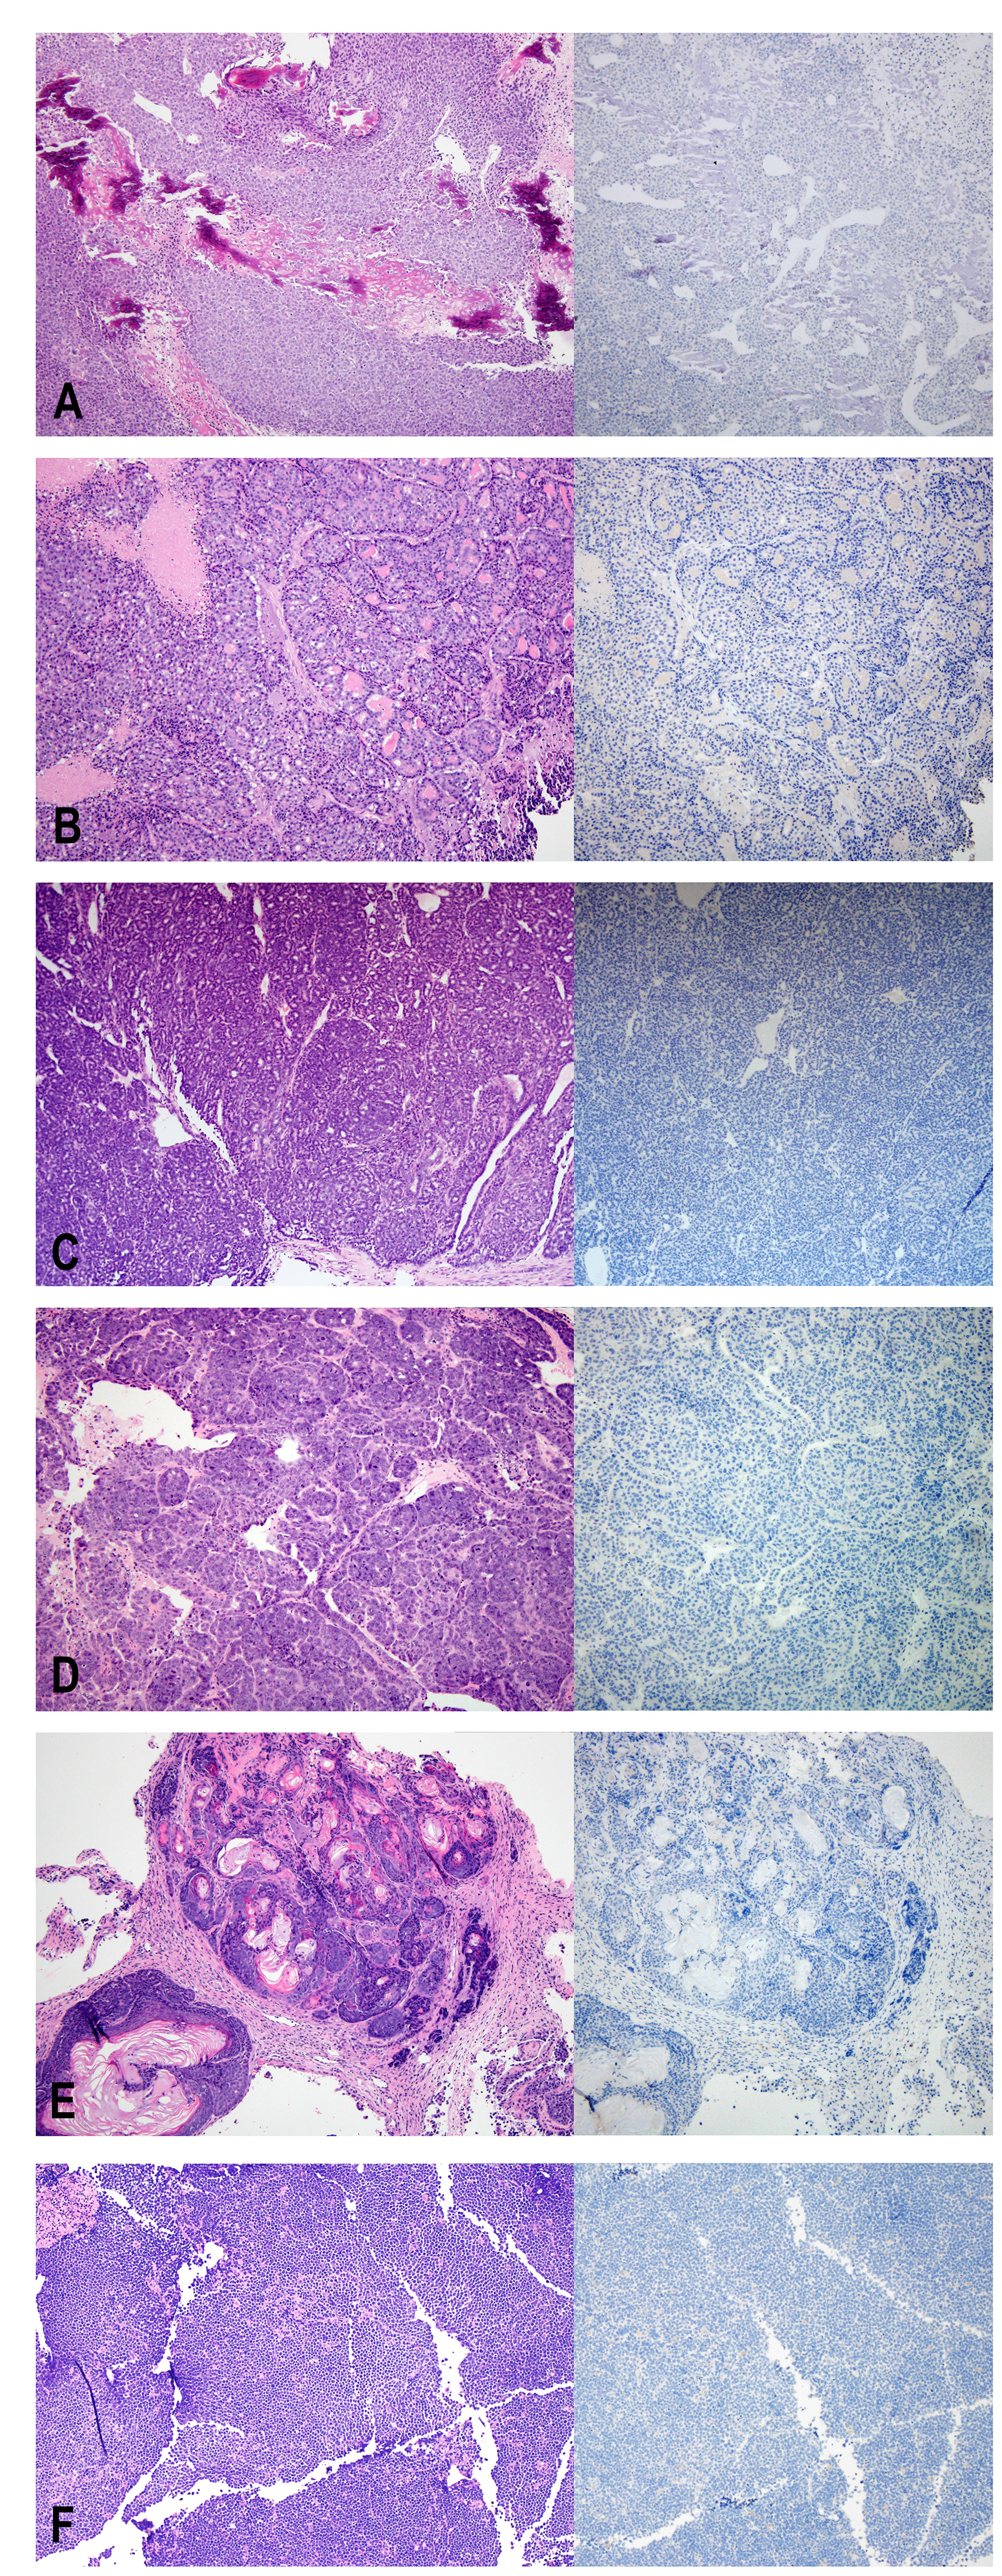 H&E (left) and Ki67 (right) staining of non-human tumors identified at the injection site.